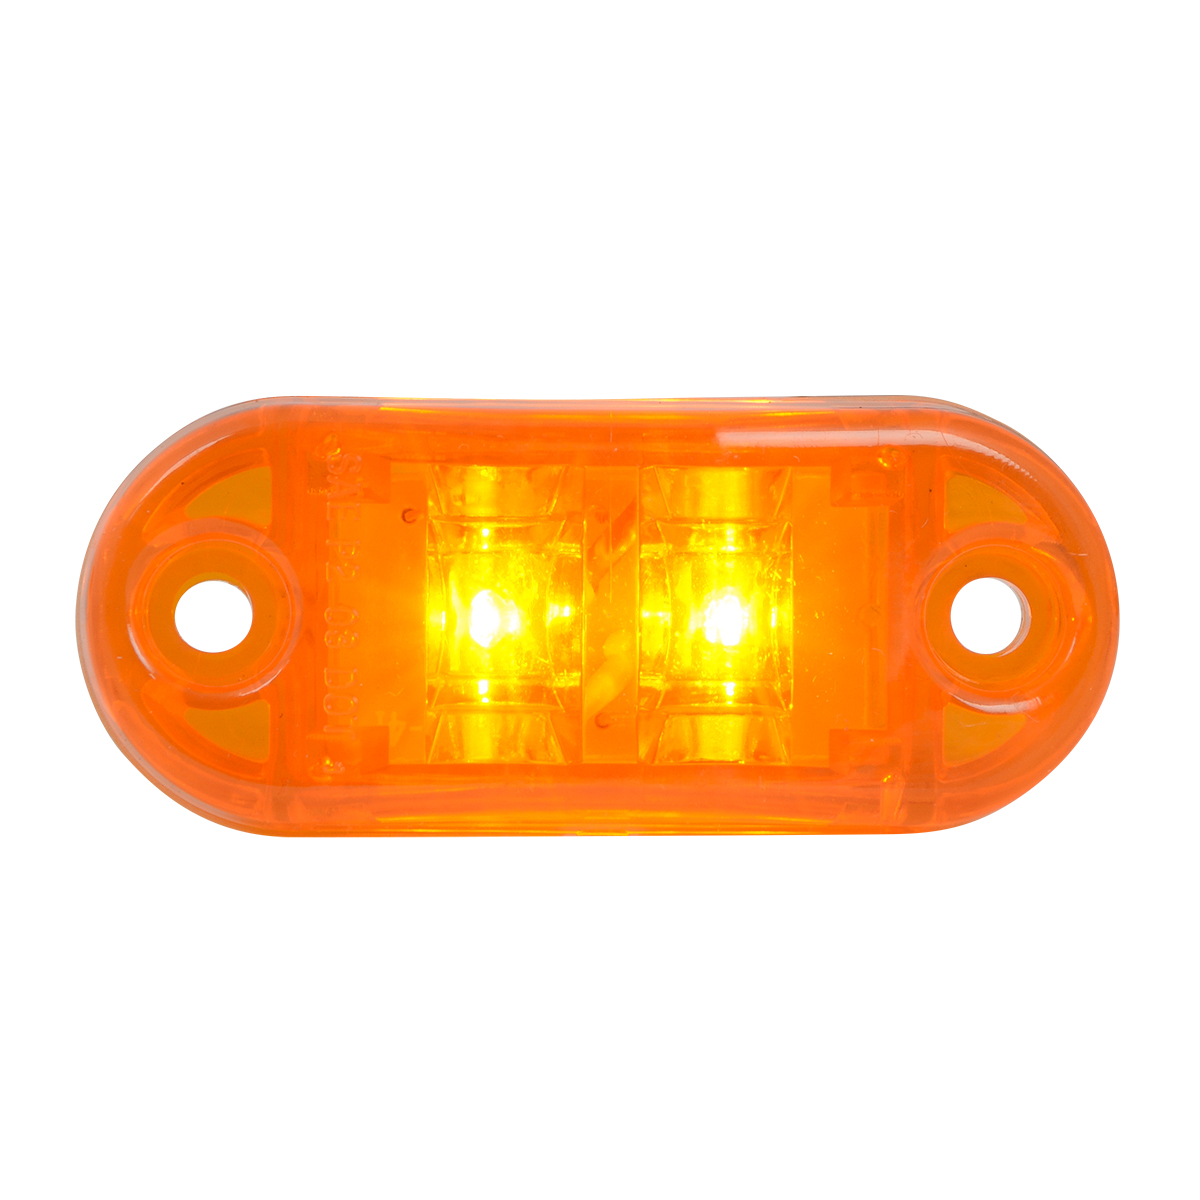 87390 Small Oval LED Marker Light in Amber/Amber